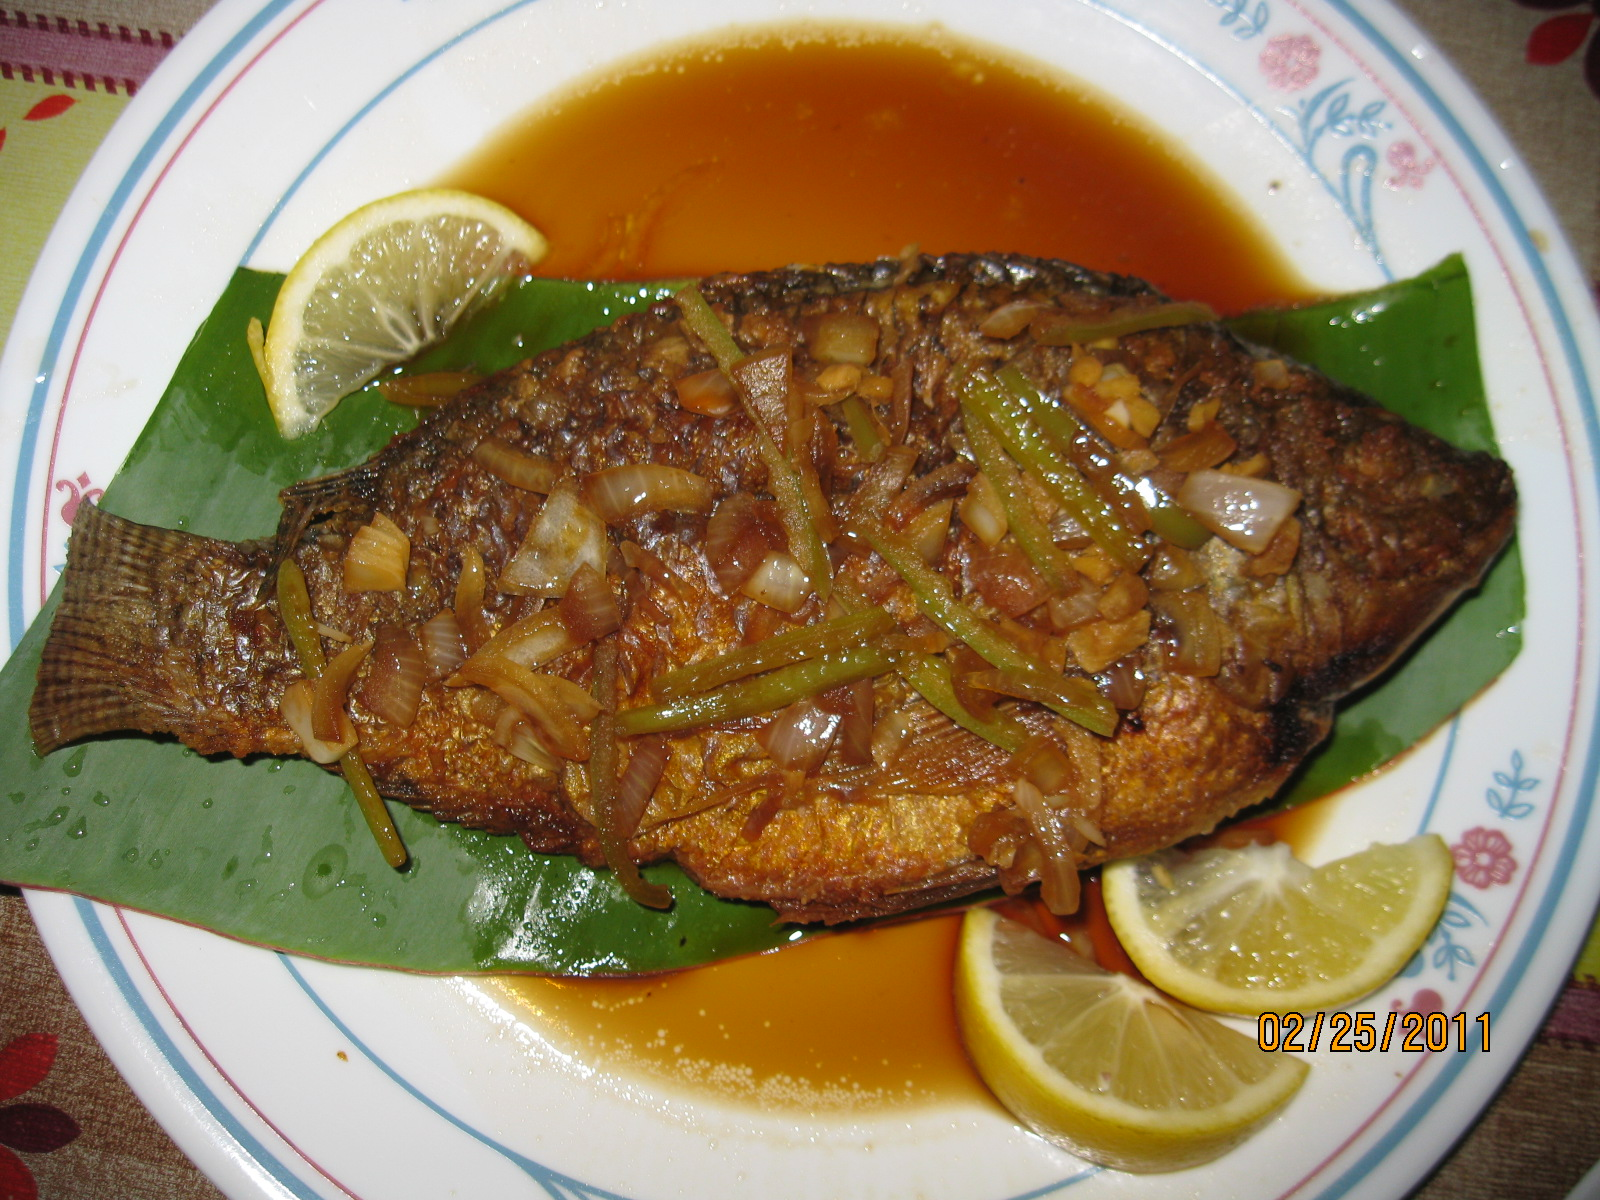 Fried tilapia with sauce for Fried tilapia fish